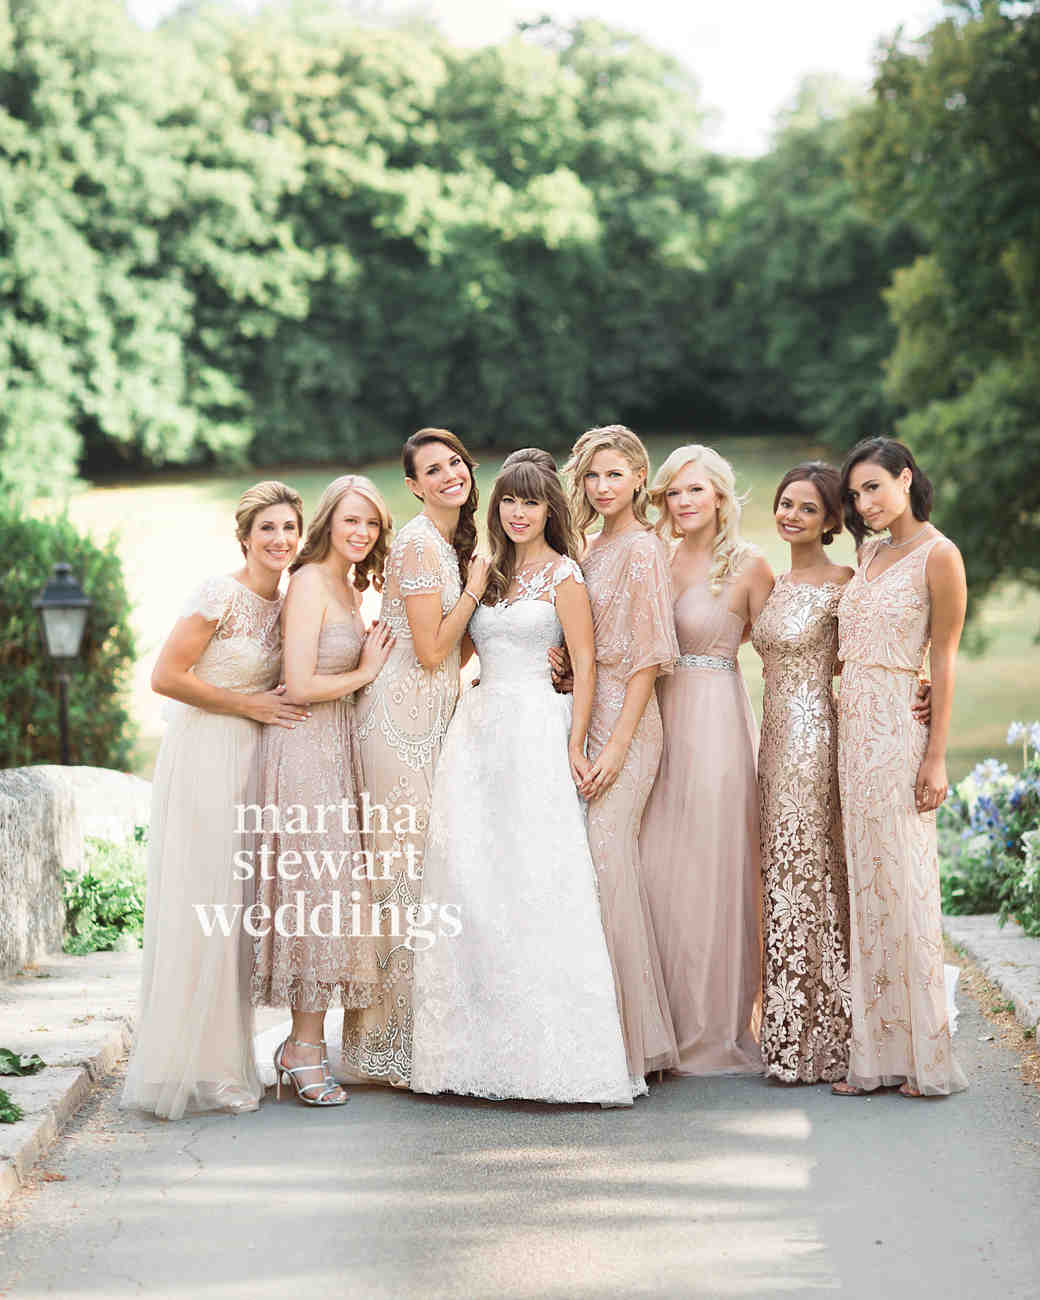 41 Reasons to Love the Mismatched Bridesmaids Look - Martha ...